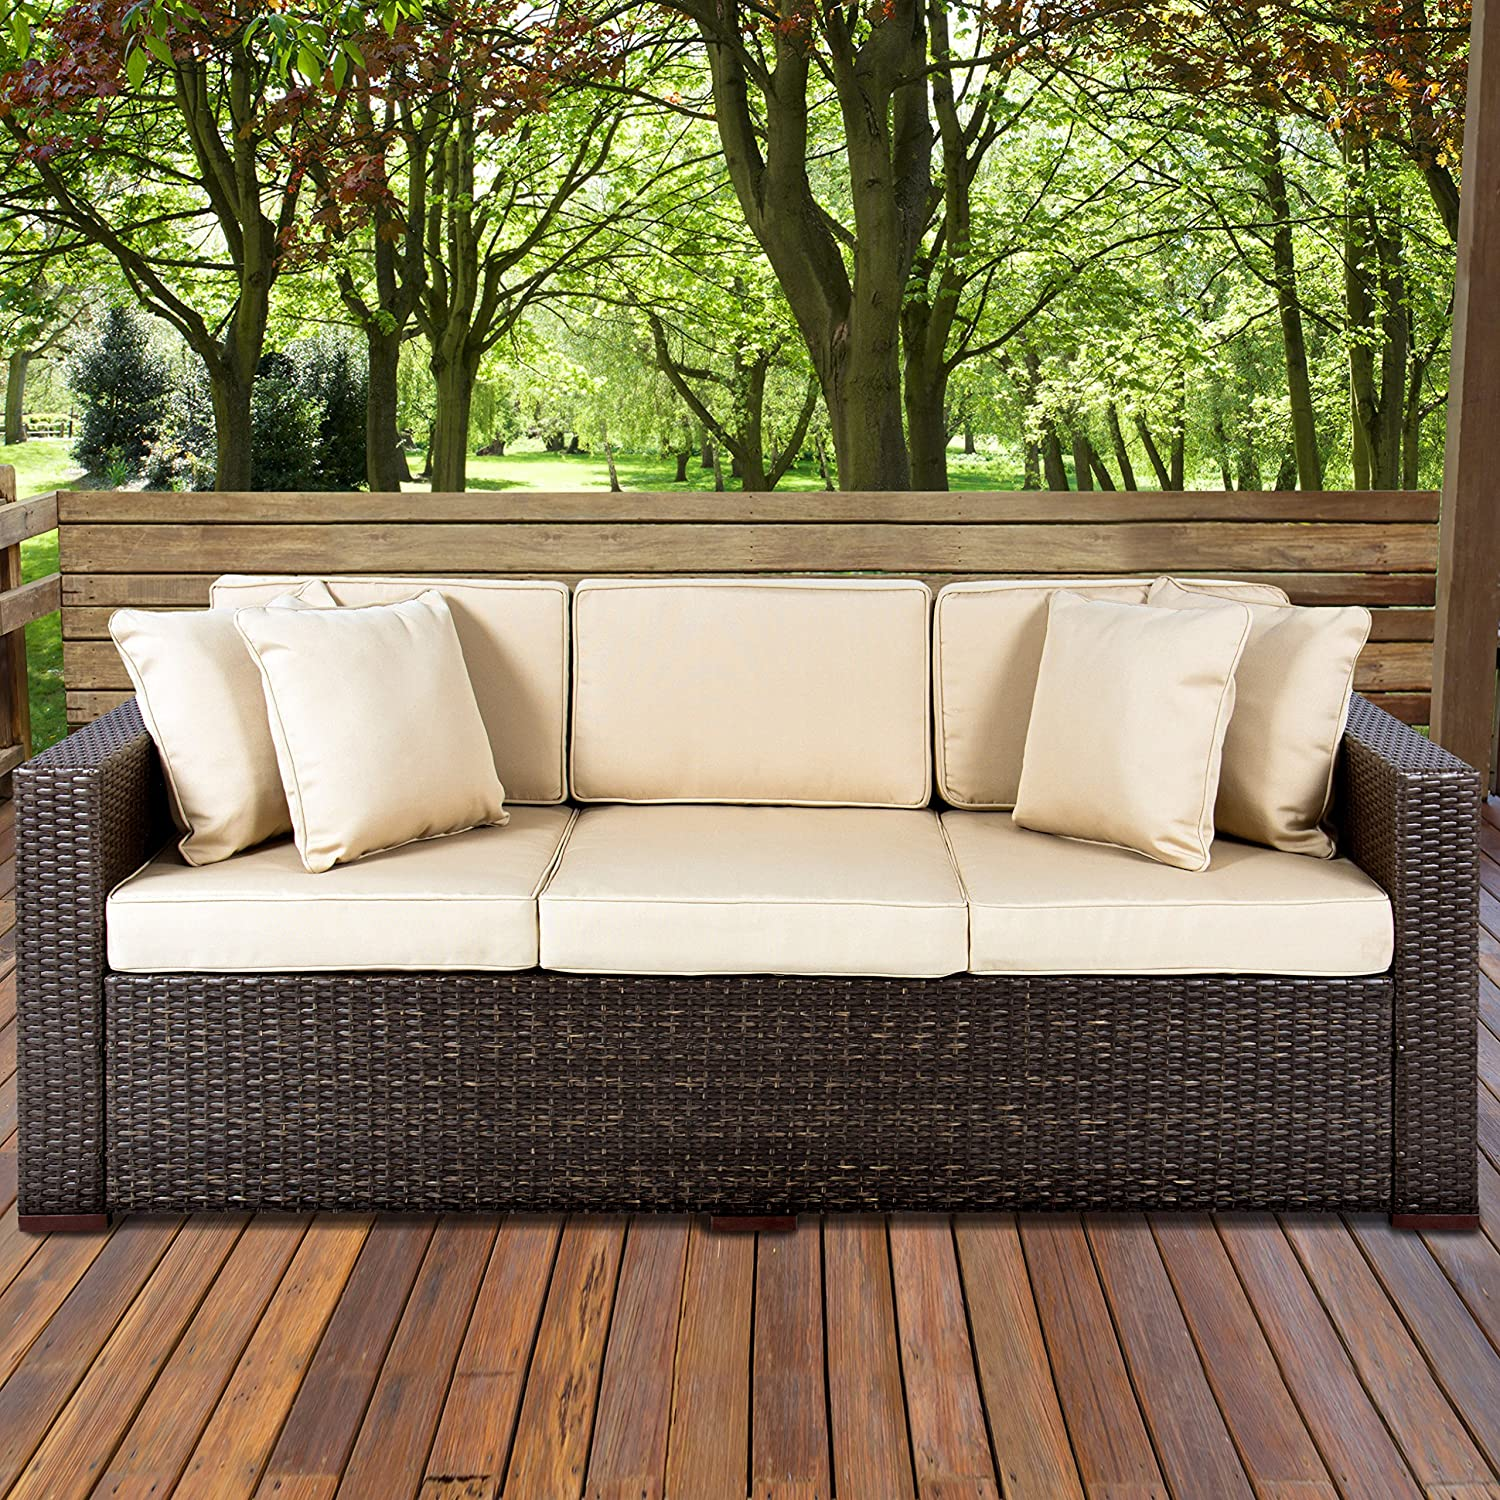 amazoncom best outdoor wicker patio furniture sofa 3 seater luxury comfort brown wicker couch patio lawn u0026 garden - Cheap Patio Sets